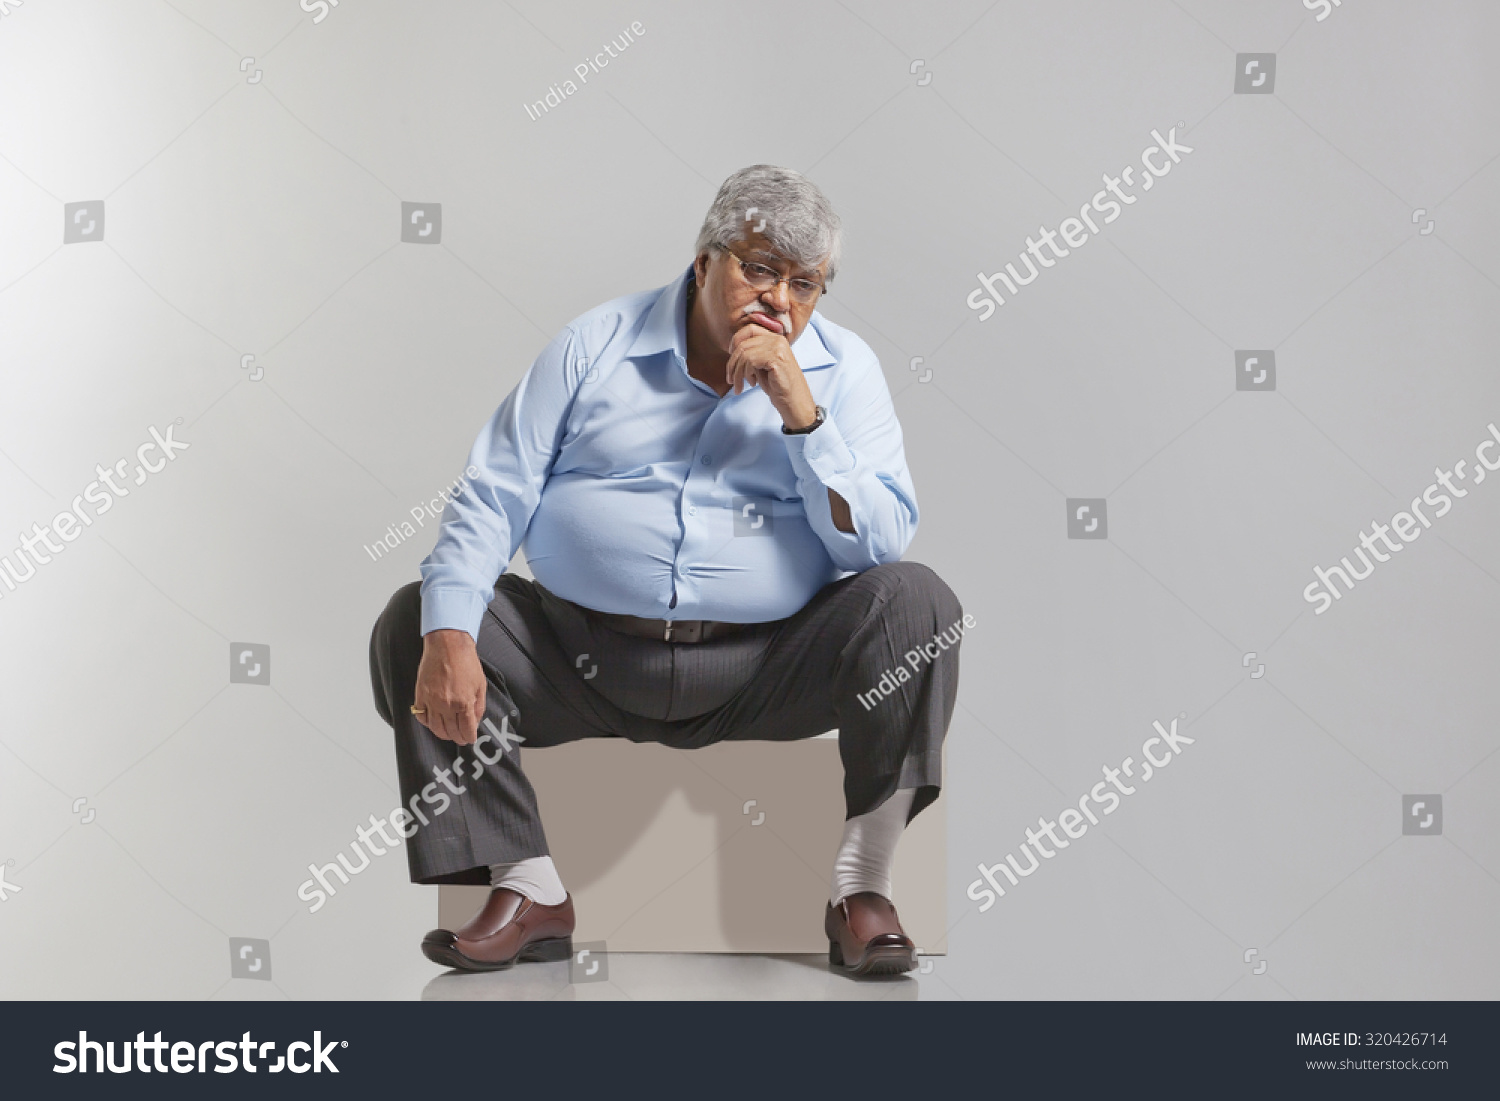 Obese Old Man Feeling Sad Stock Photo 320426714 - Shutterstock